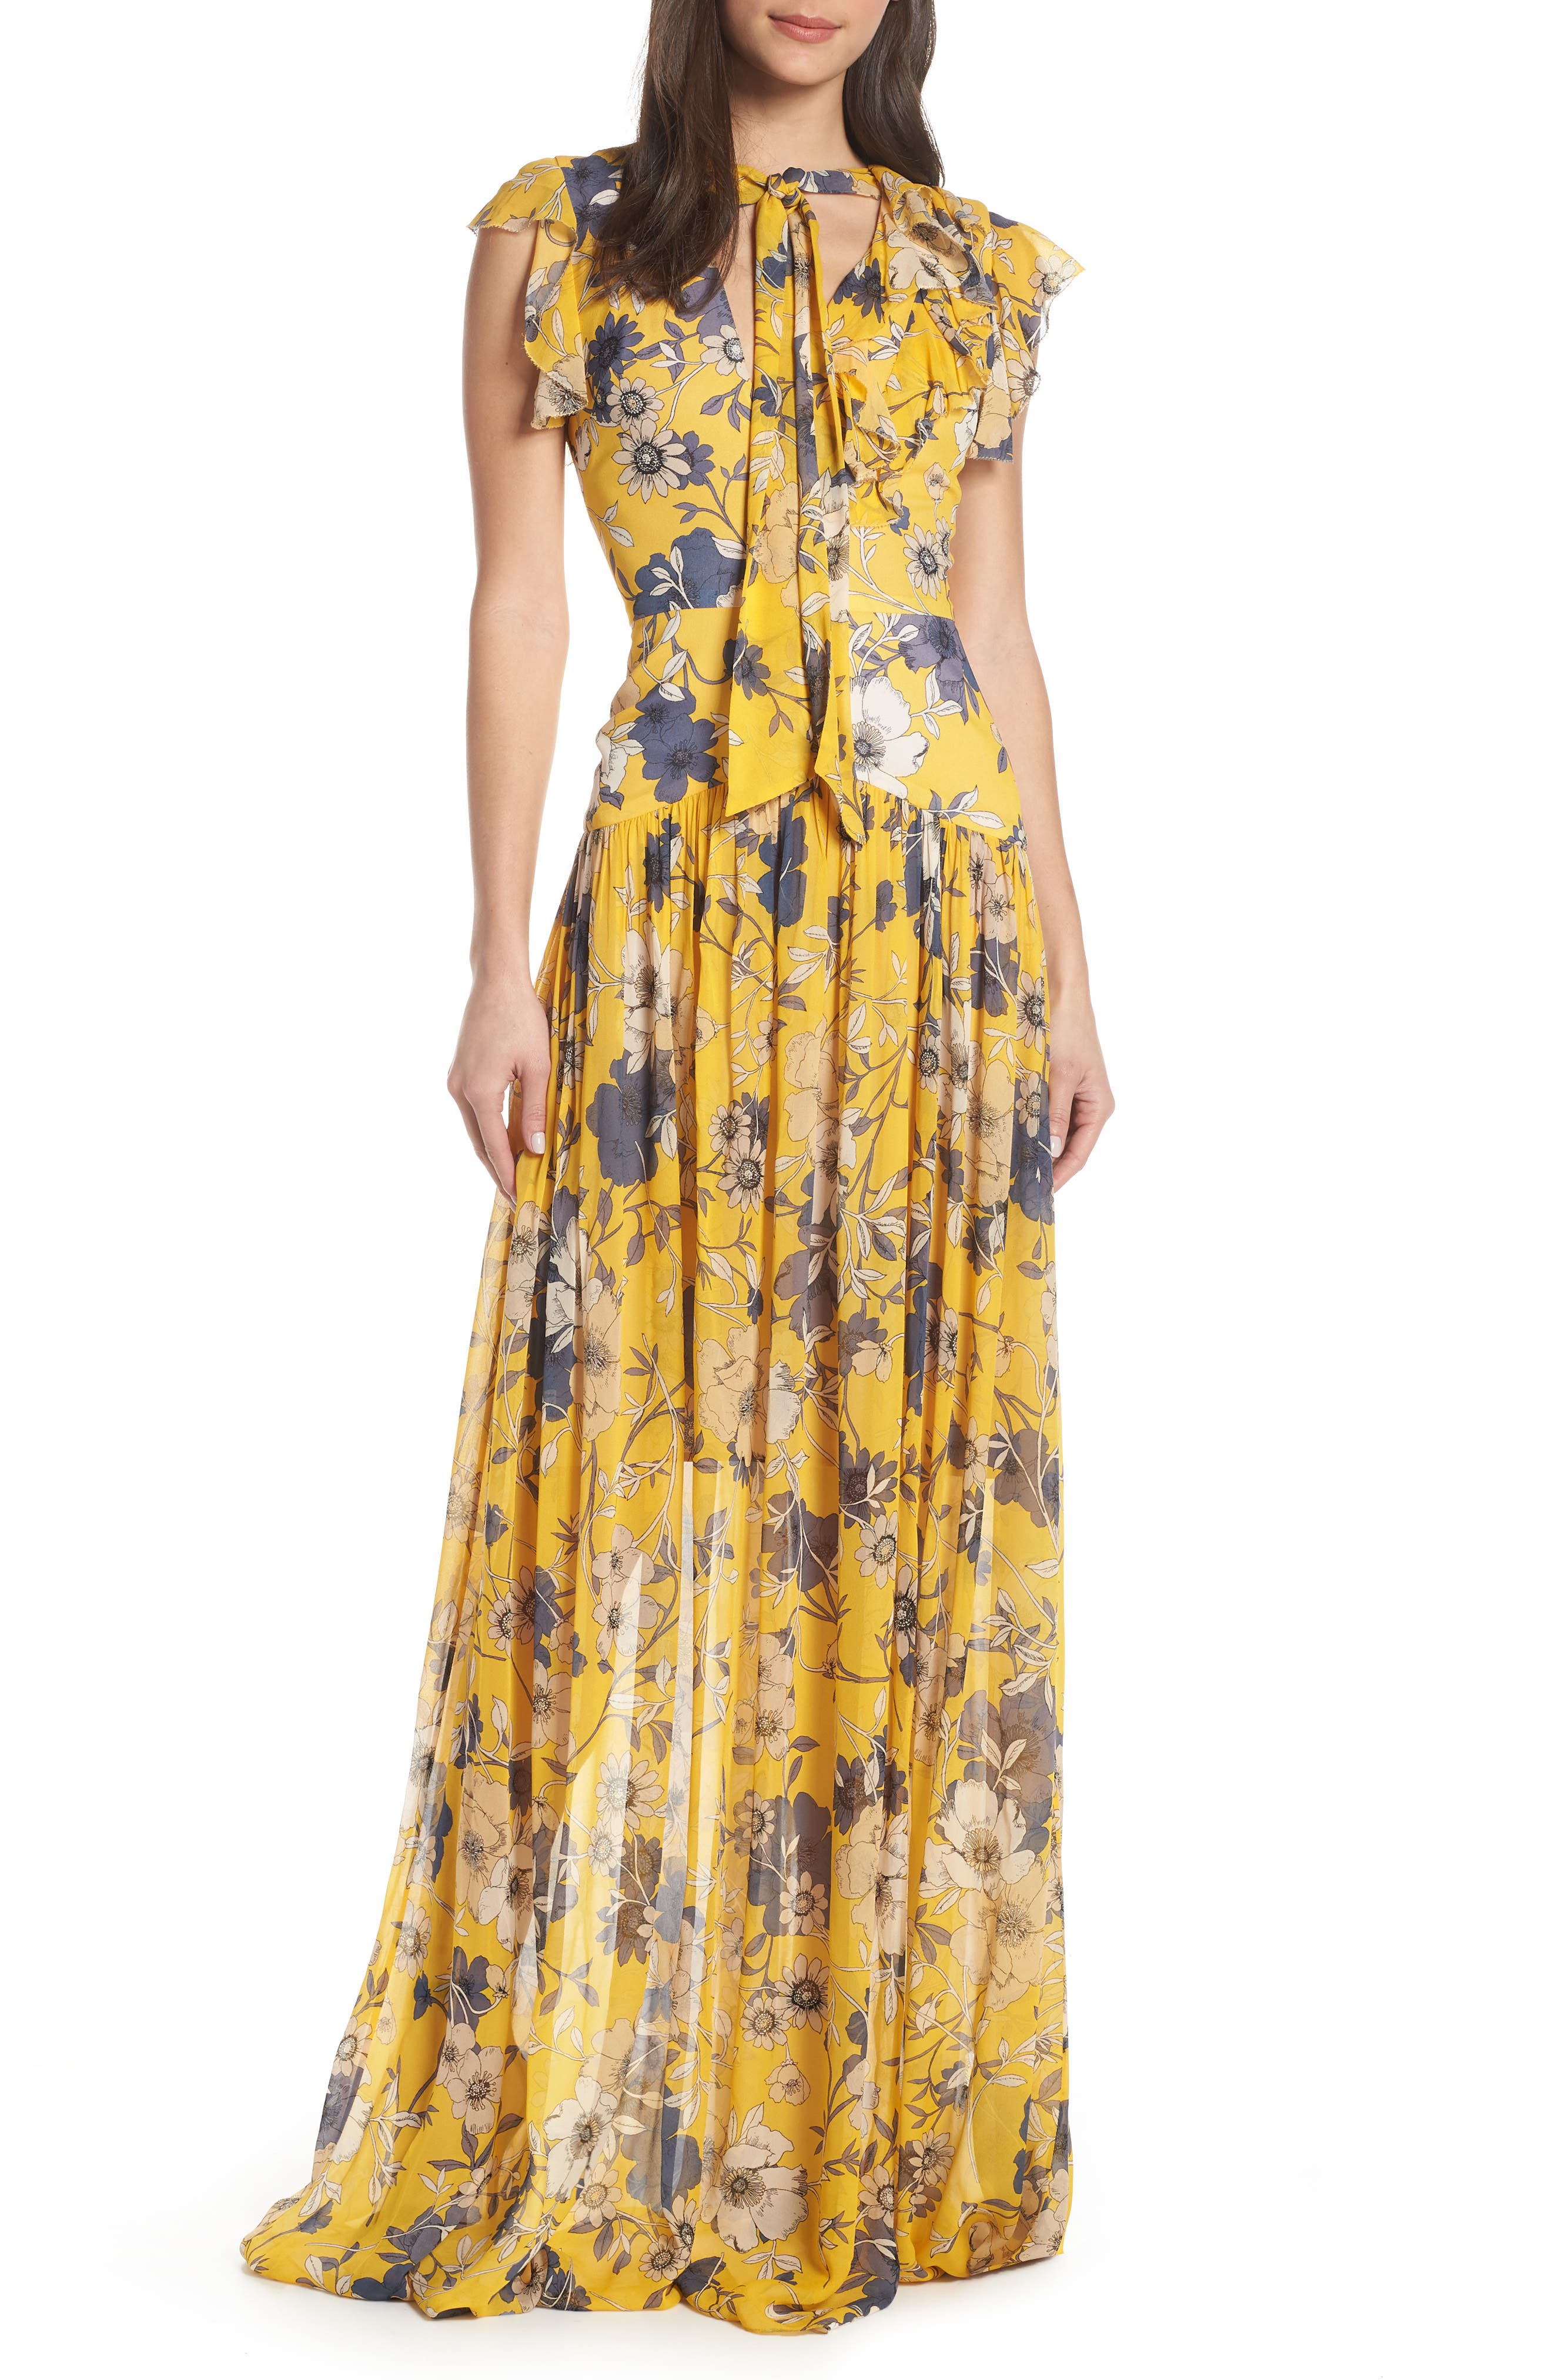 1930s Day Dresses, Afternoon Dresses History Womens Ml Monique Lhuillier Floral Maxi Dress Size 16 - Yellow $595.00 AT vintagedancer.com